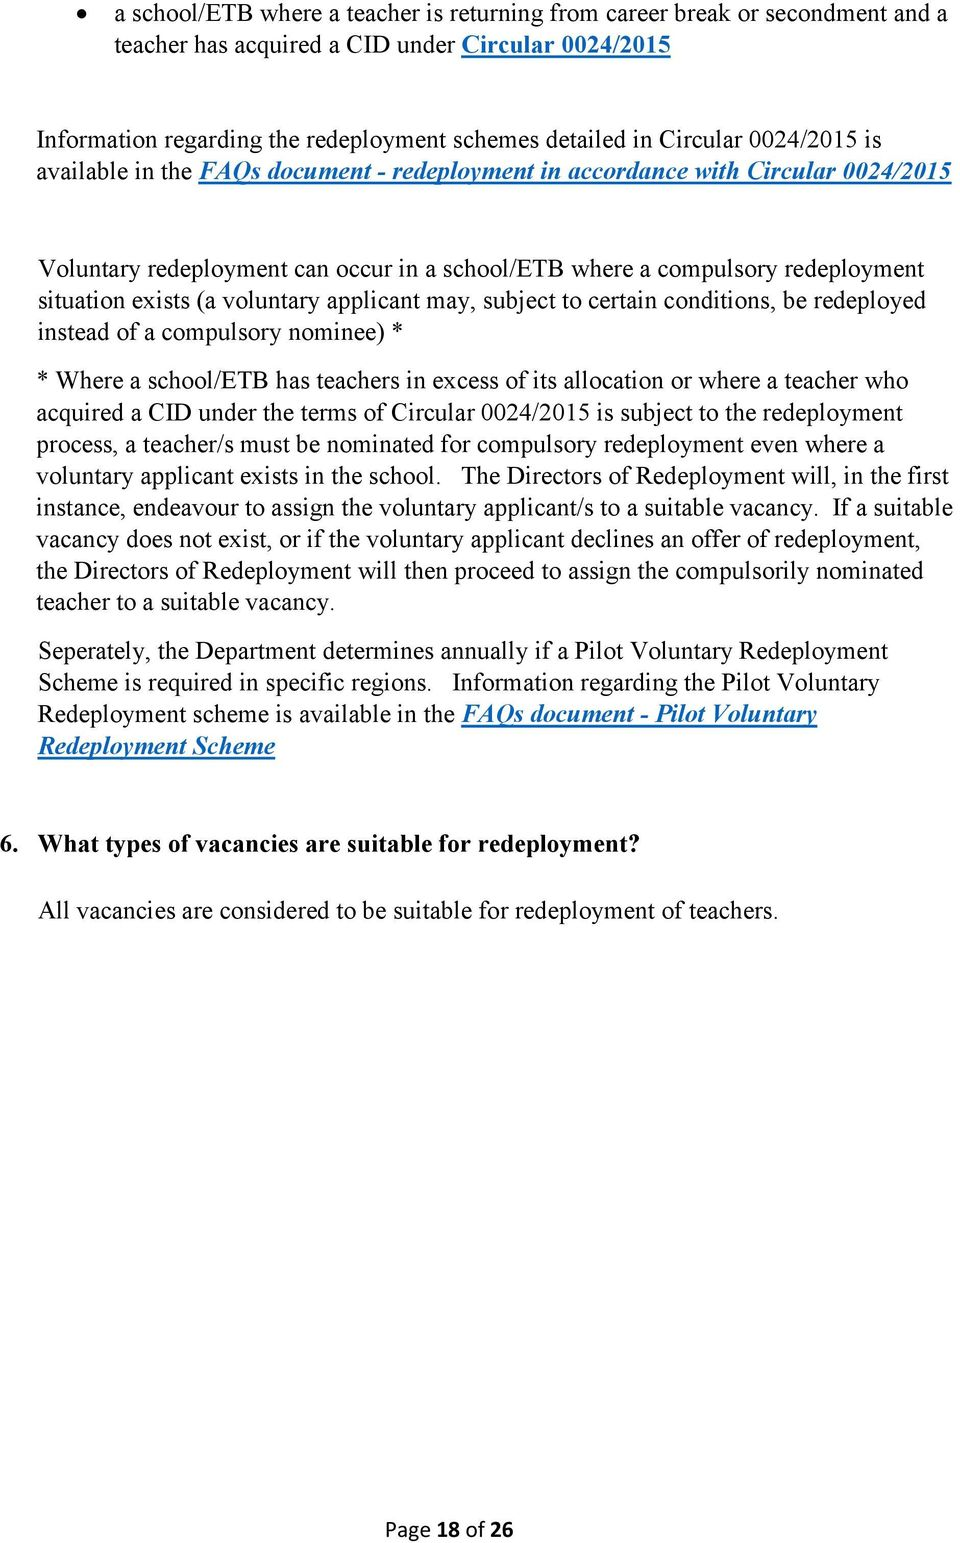 voluntary applicant may, subject to certain conditions, be redeployed instead of a compulsory nominee) * * Where a school/etb has teachers in excess of its allocation or where a teacher who acquired